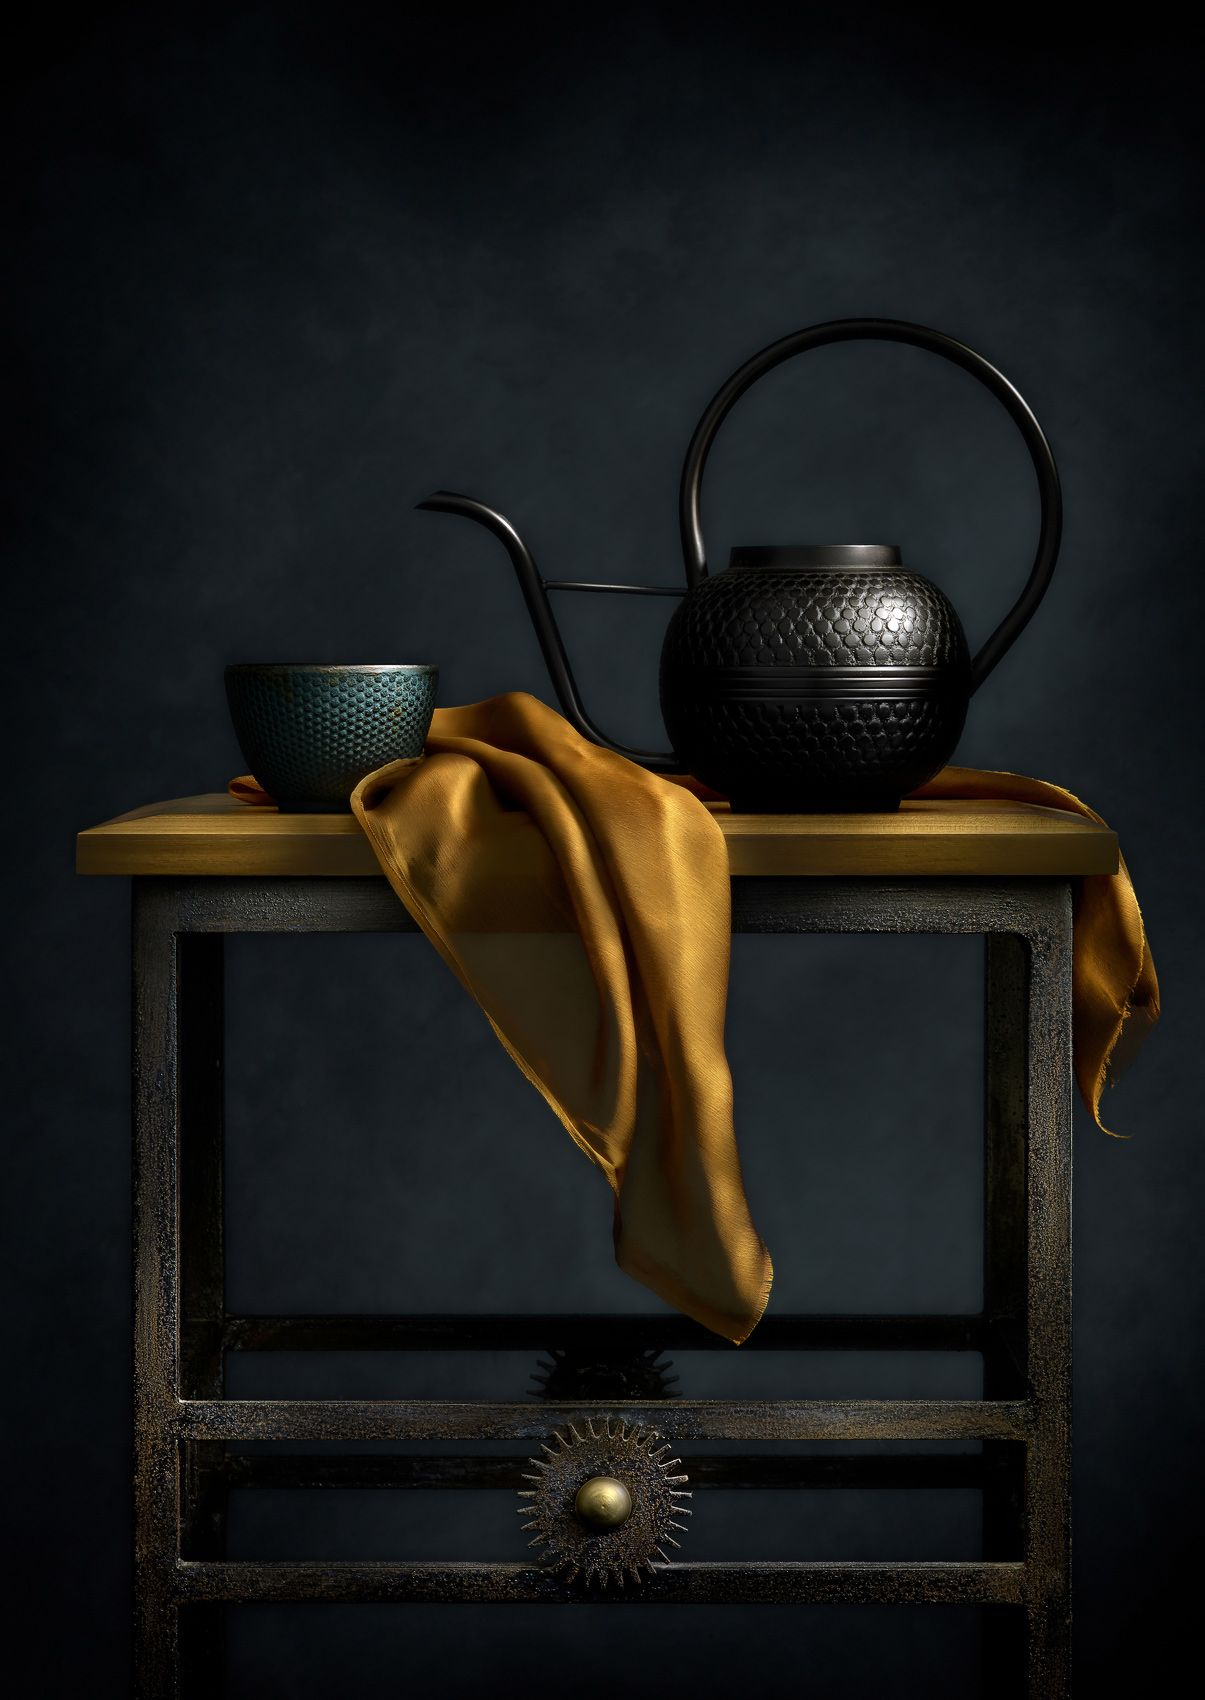 Teapot and Table by Harold Ross